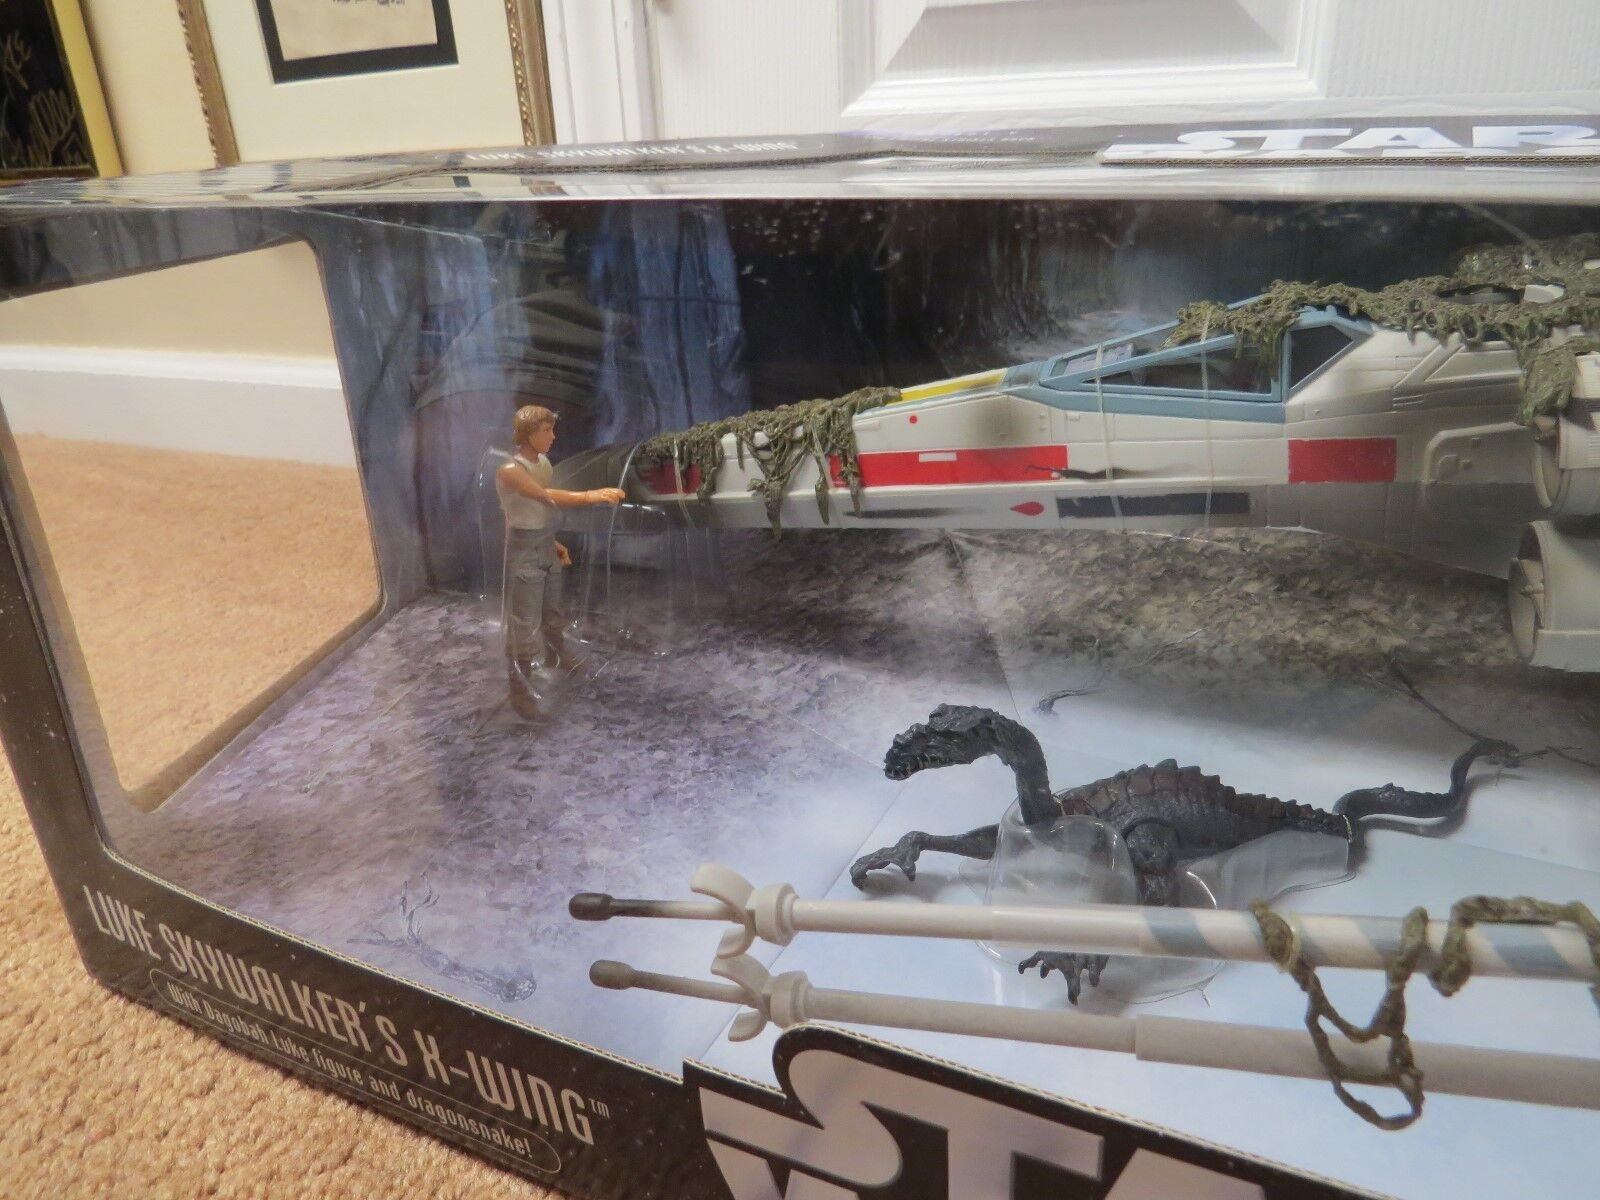 estrella guerras guerras guerras LUKE cieloWALKER'S X-WING FIGHTER SAGA COLLECTION MISB 884ab9